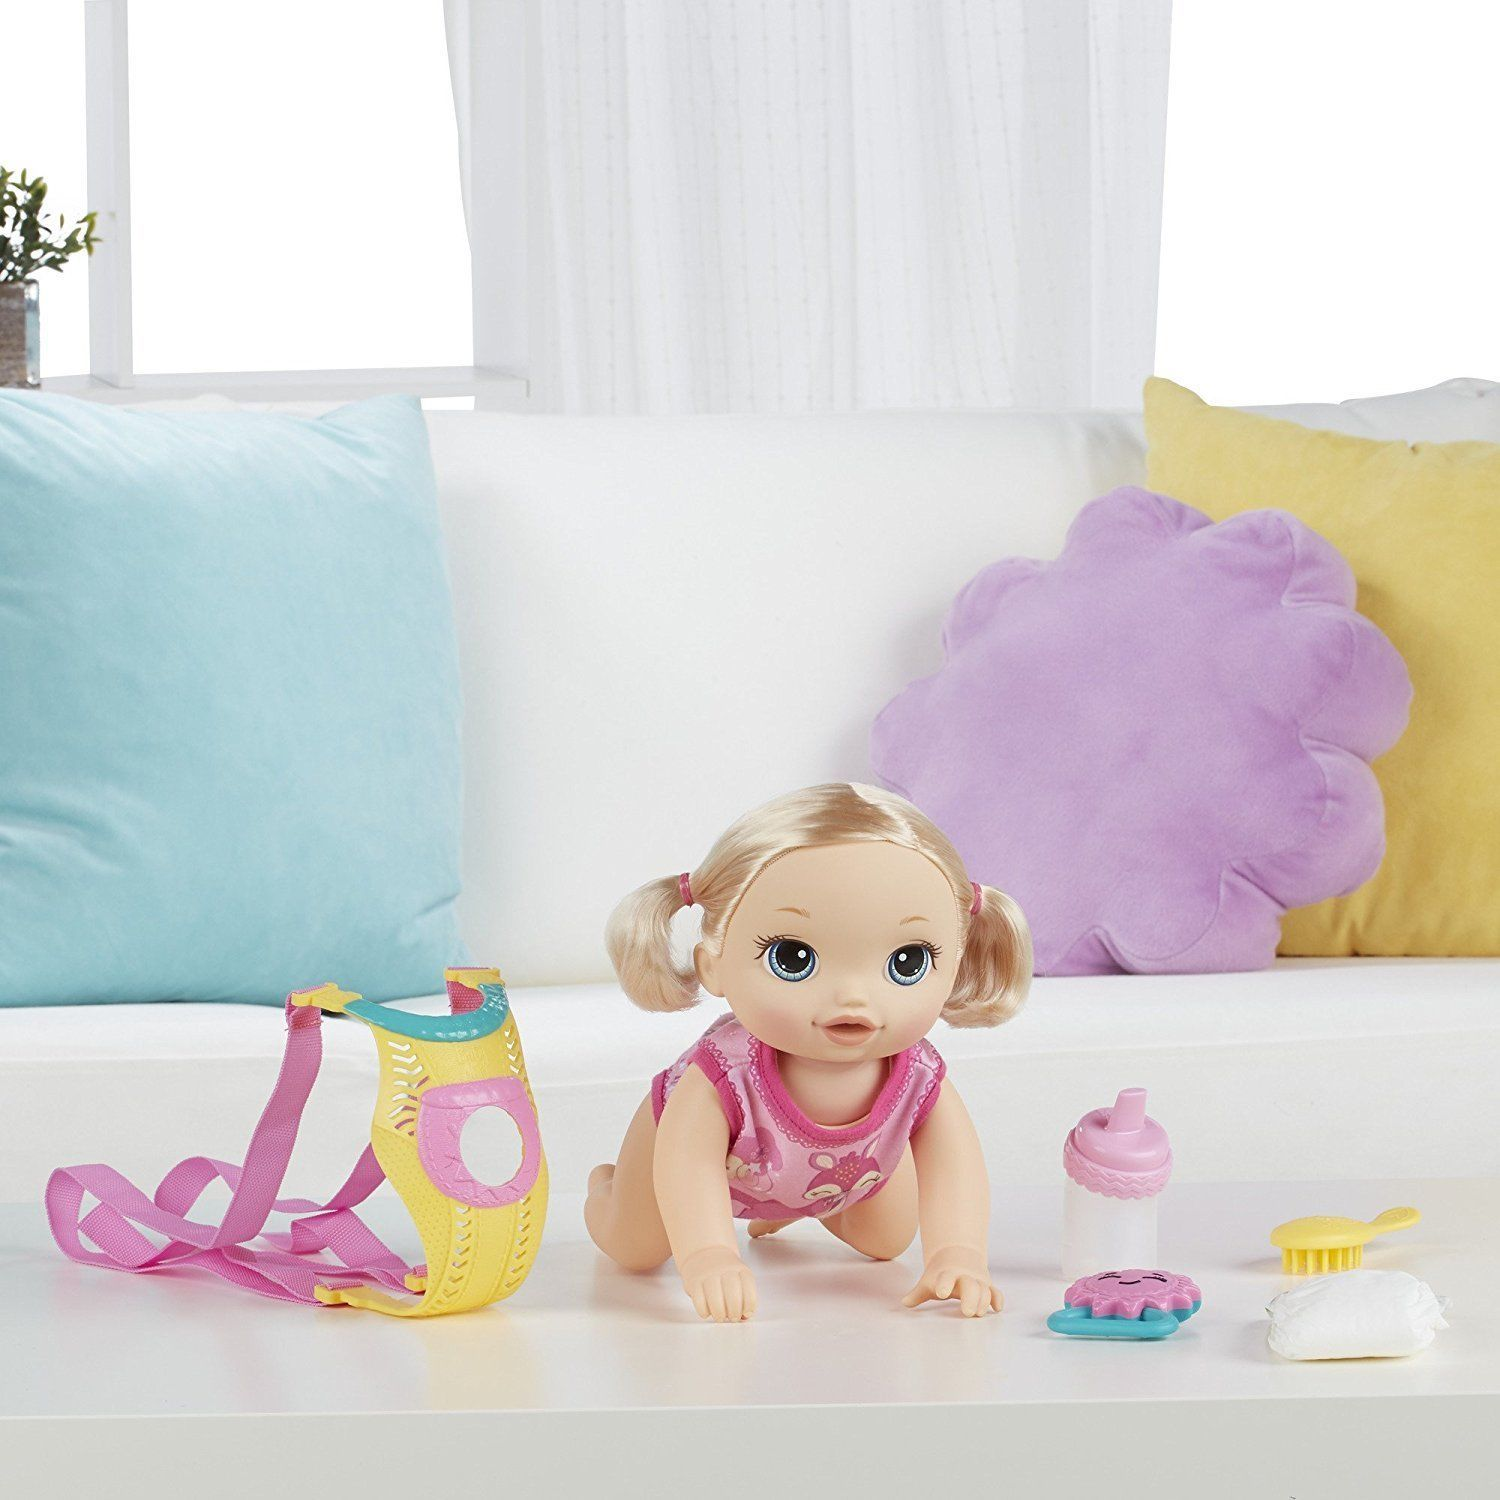 Baby Alive Baby Go Bye Bye Blonde Doll Set Girls Interactive Toy Ebay With Images Baby Alive Interactive Toys Toys For Girls